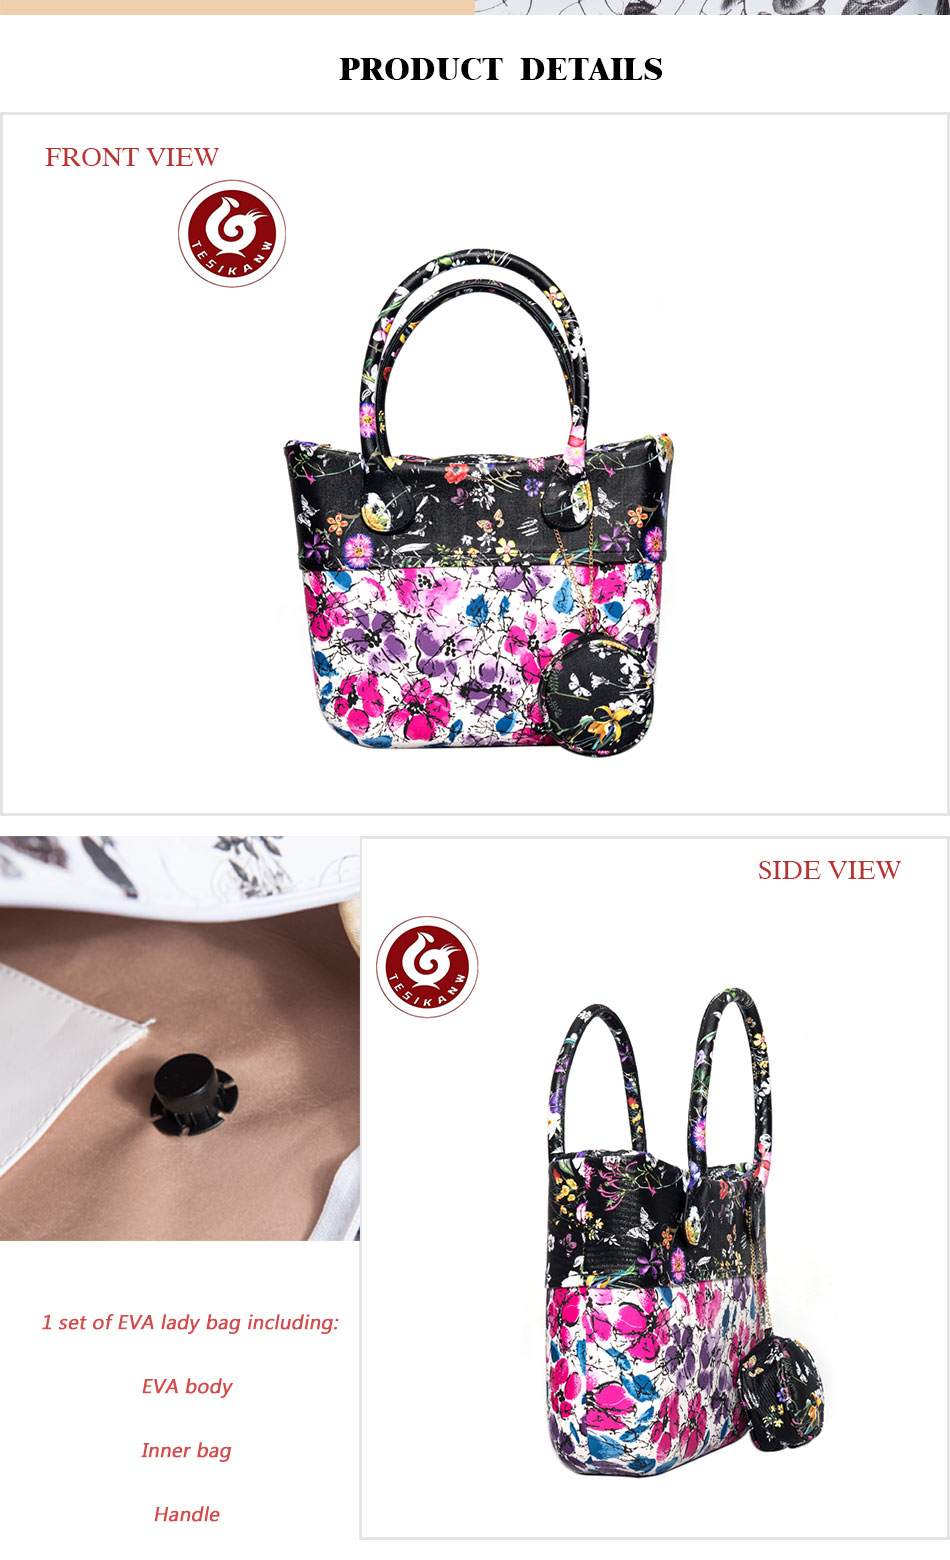 7e3702f15d22 OEM ODM Europe Italy Hot Selling Molded In One body EVA Jelly Bag ...